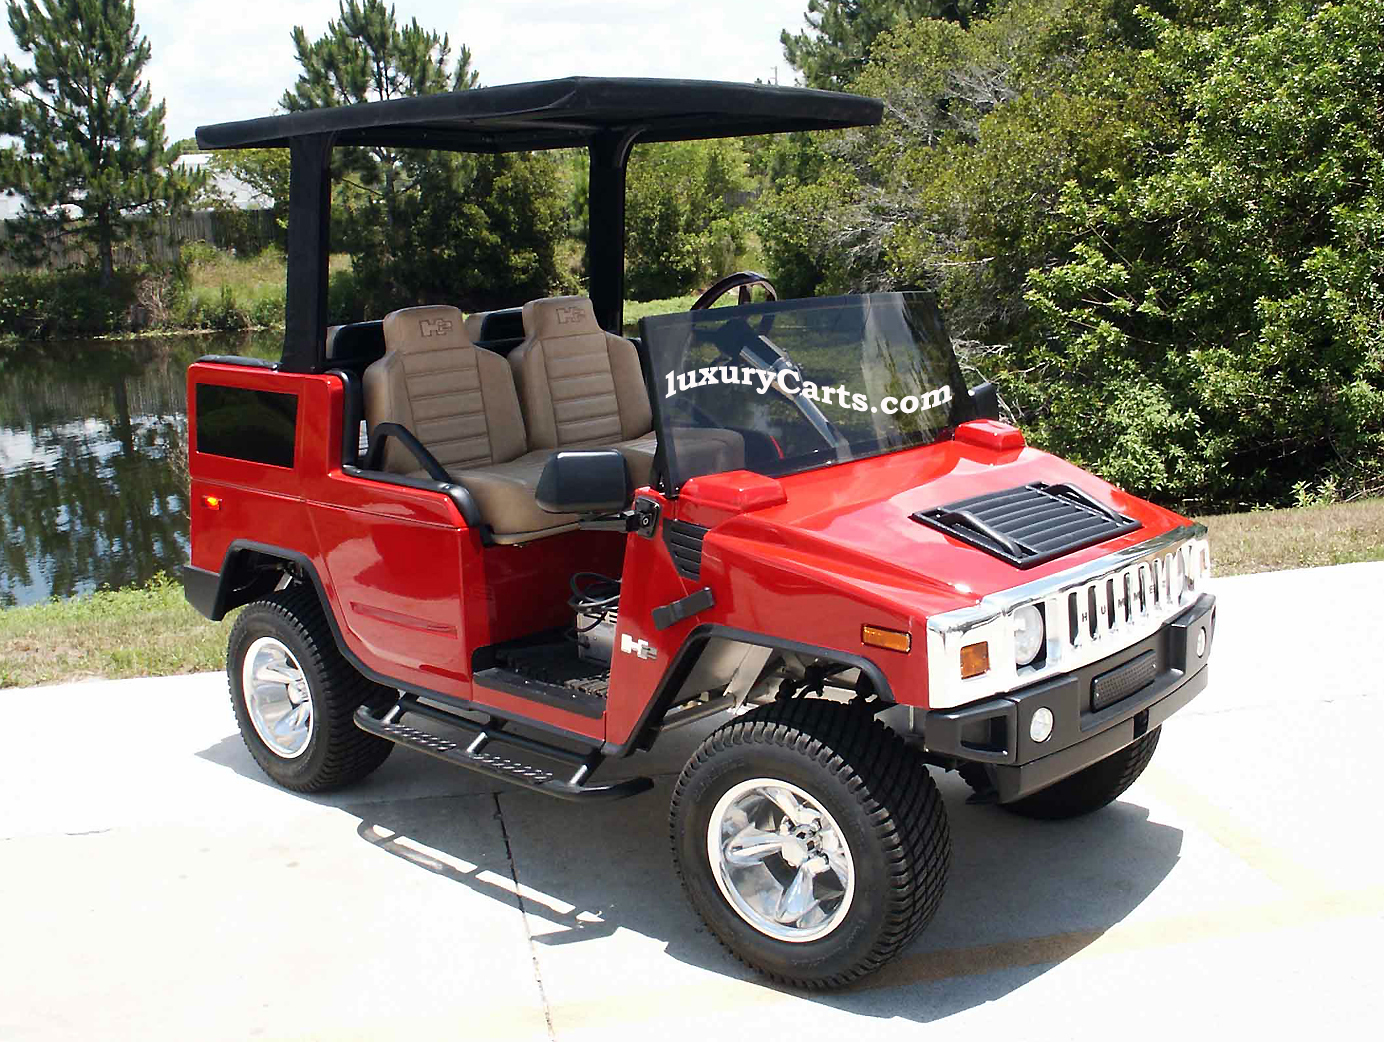 Peachtree City will vote to ban gas-guzzling golf carts on its multi-use paths.